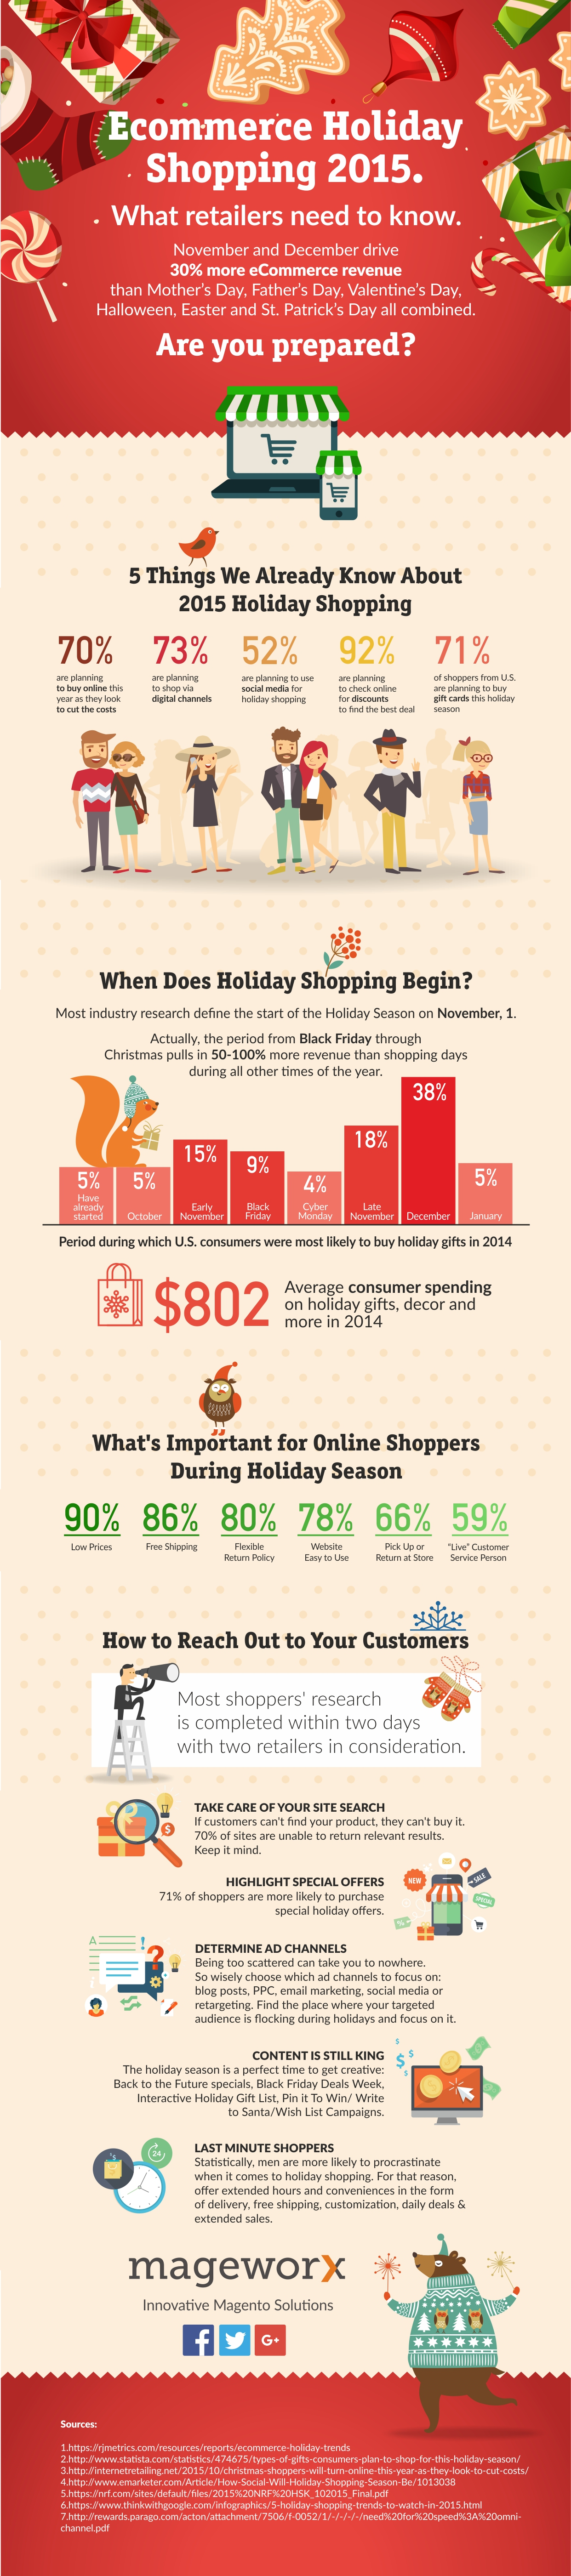 Holiday shopping trends in ecommerce 2015